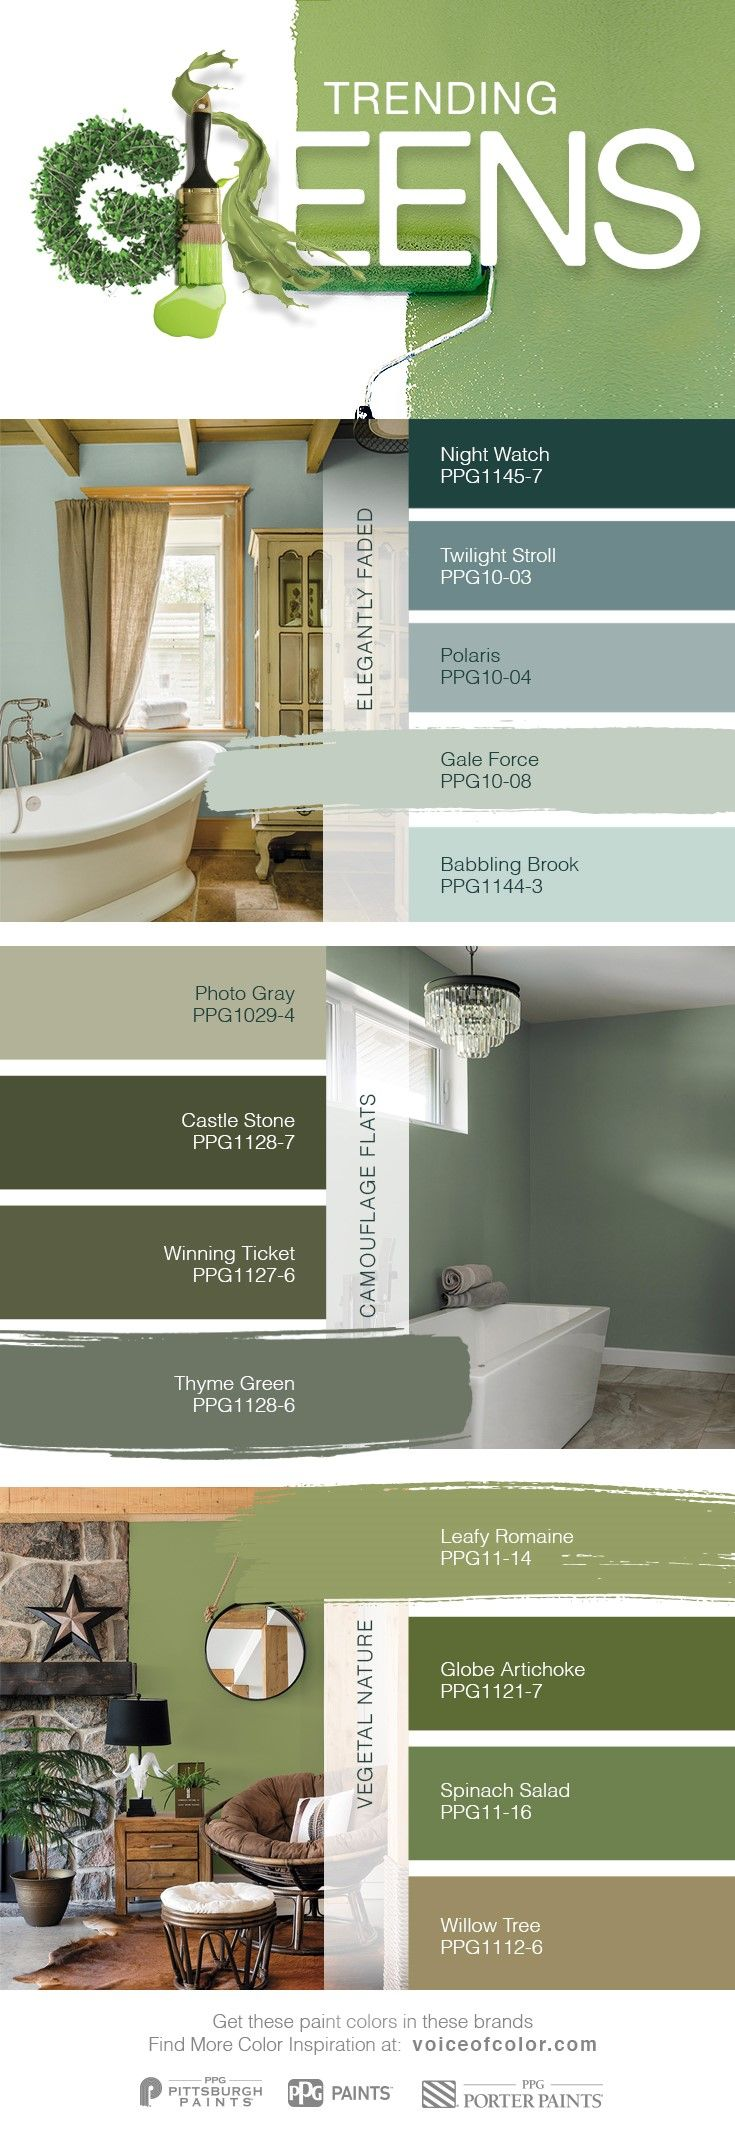 best 25 bathroom paint colors ideas only on pinterest bathroom trending green paint colors for 2017 the natural world is once again becoming a dominant